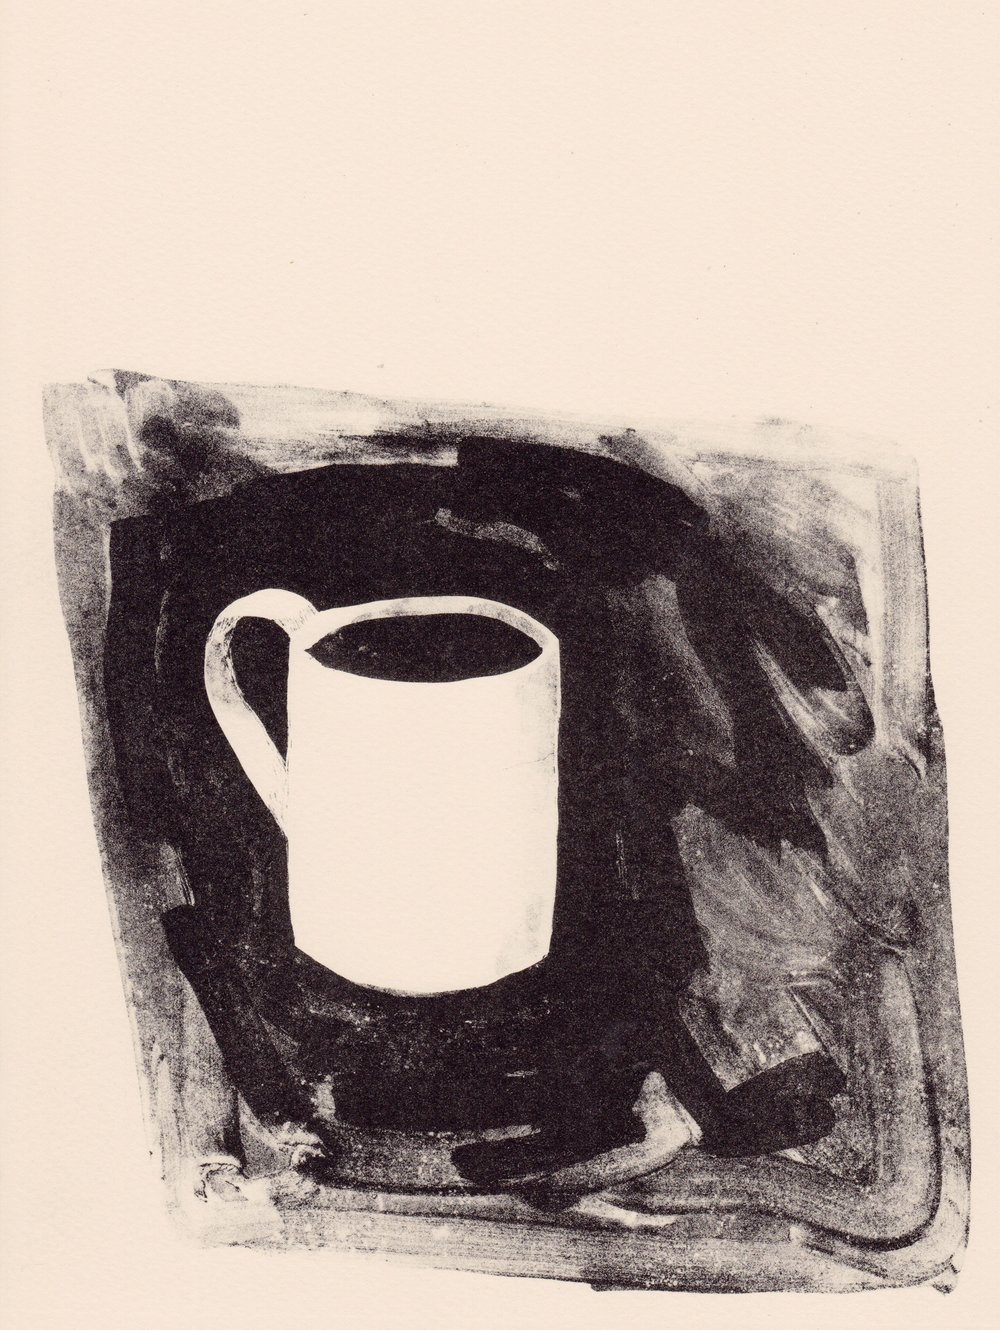 'Can I bring you some coffee?', 2015, lithograph, 28 x 21cm, edition of 5 - 1.jpg